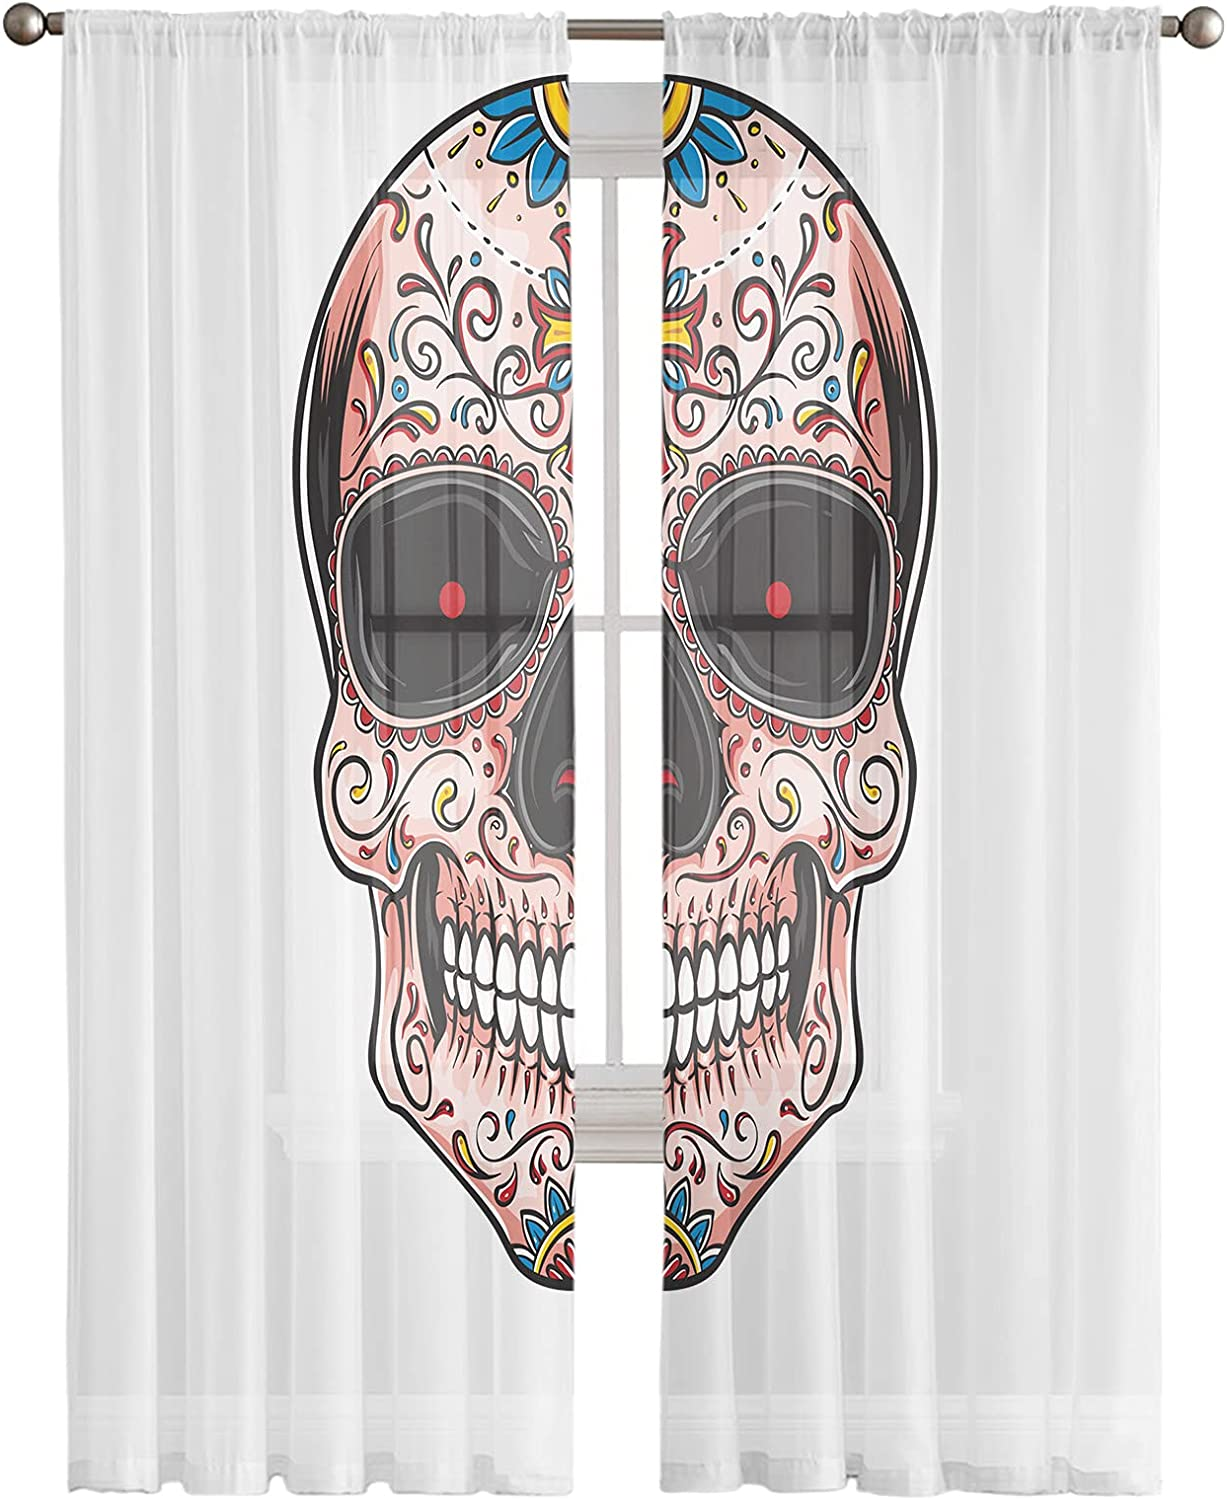 Sheer Curtains 72 Inches Long 2 Tattoo Skull Panels Desi depot Floral free shipping